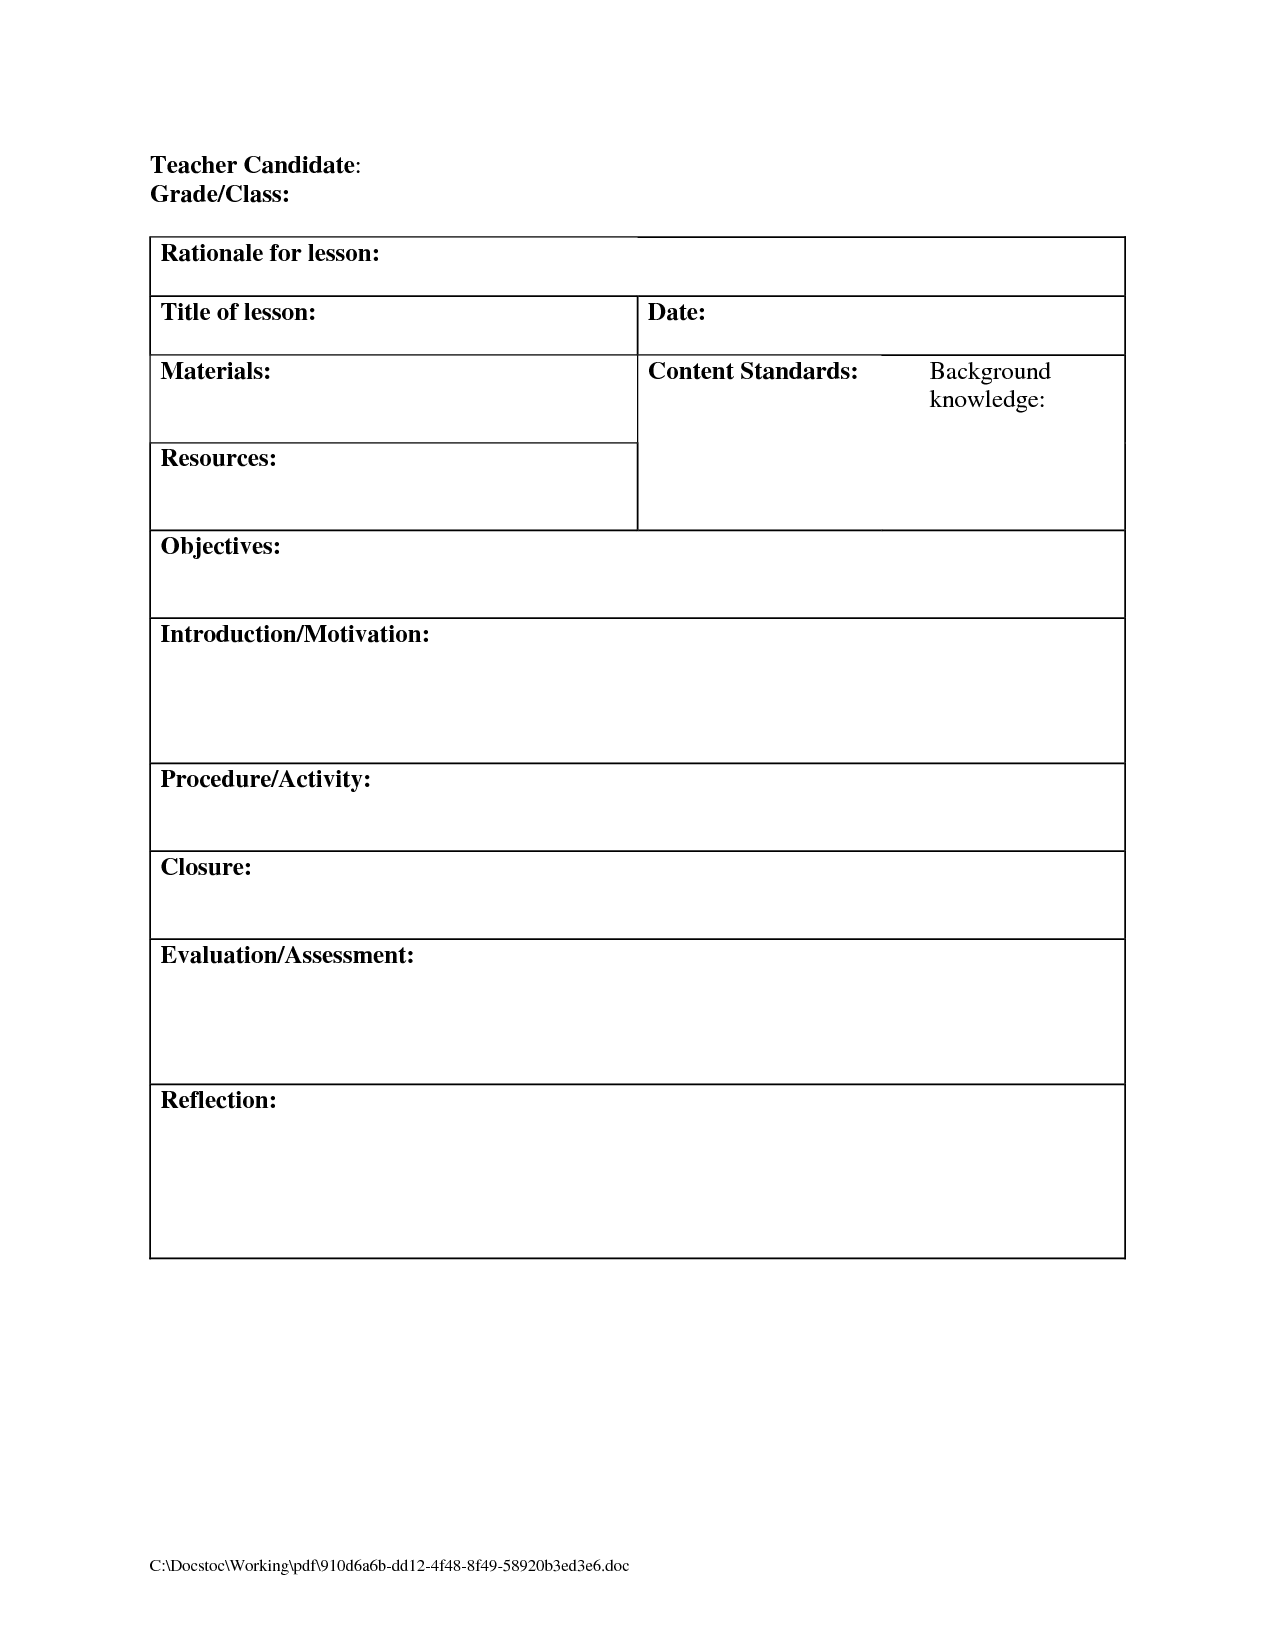 Printable Blank Lesson Plans Form For Counselors Blank Lesson - School counselor lesson plan template